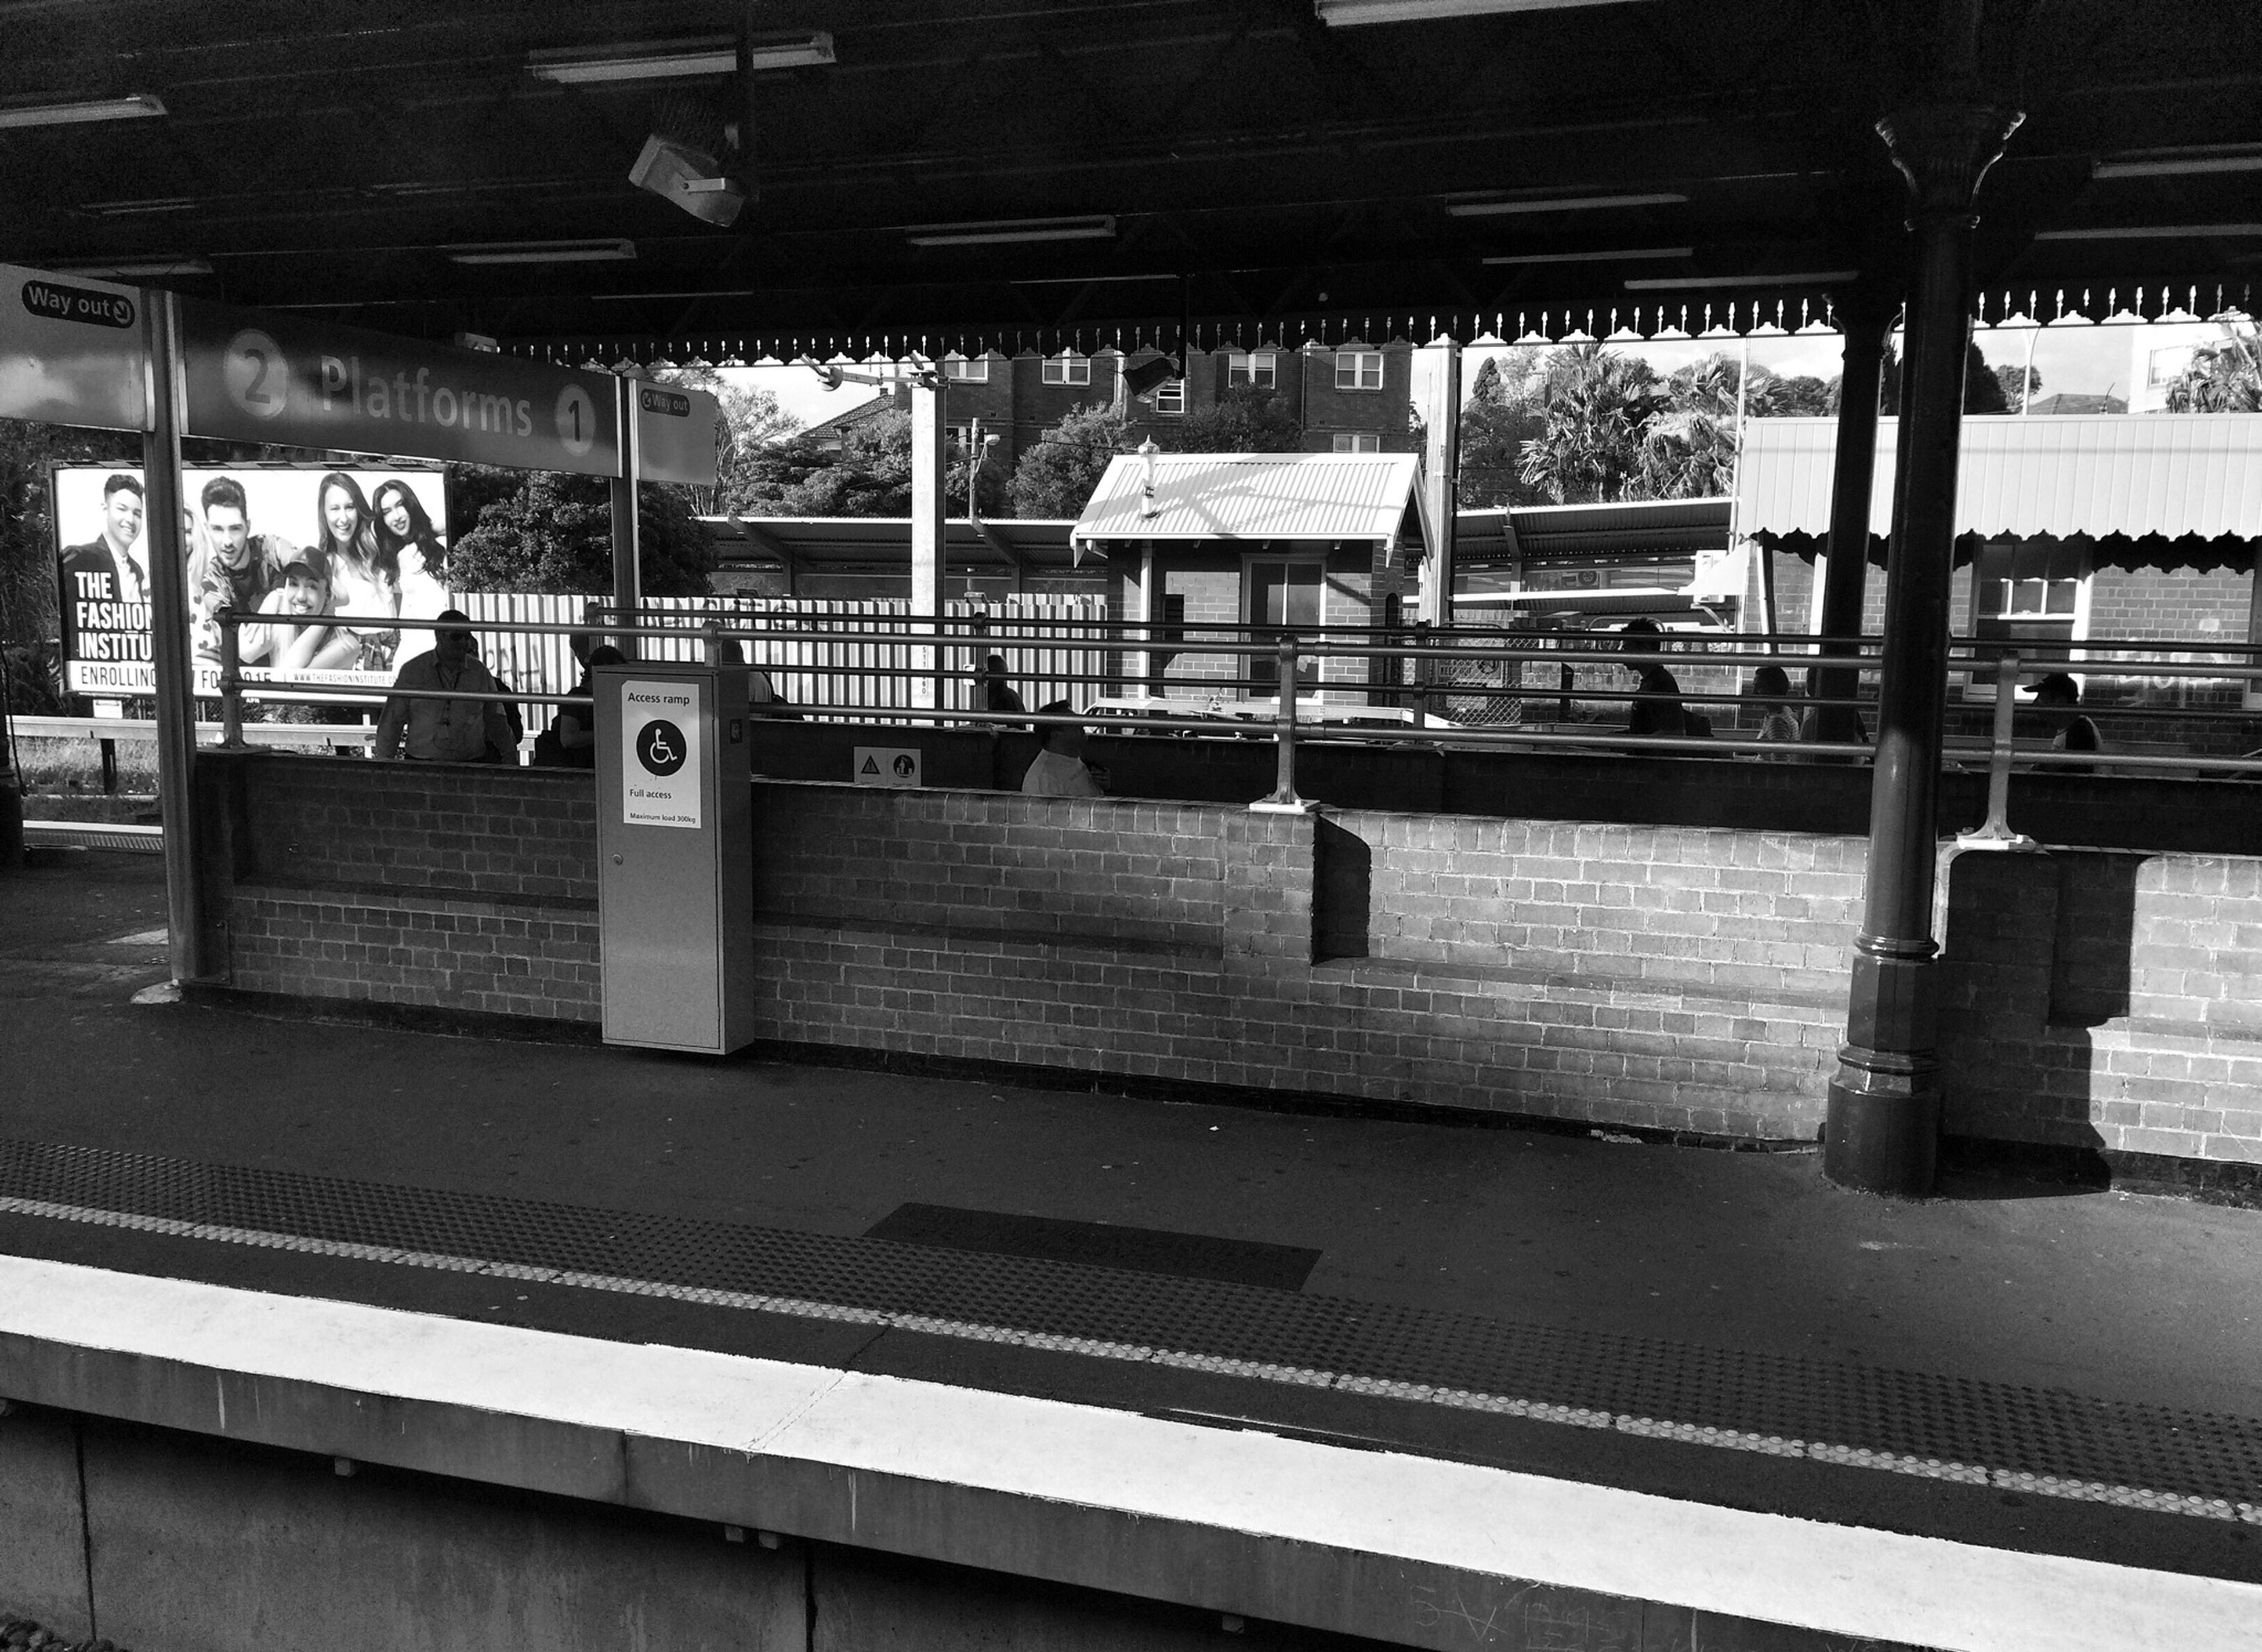 indoors, built structure, architecture, transportation, public transportation, railroad station, railroad station platform, empty, rail transportation, ceiling, architectural column, interior, mode of transport, railing, absence, incidental people, day, window, railroad track, column